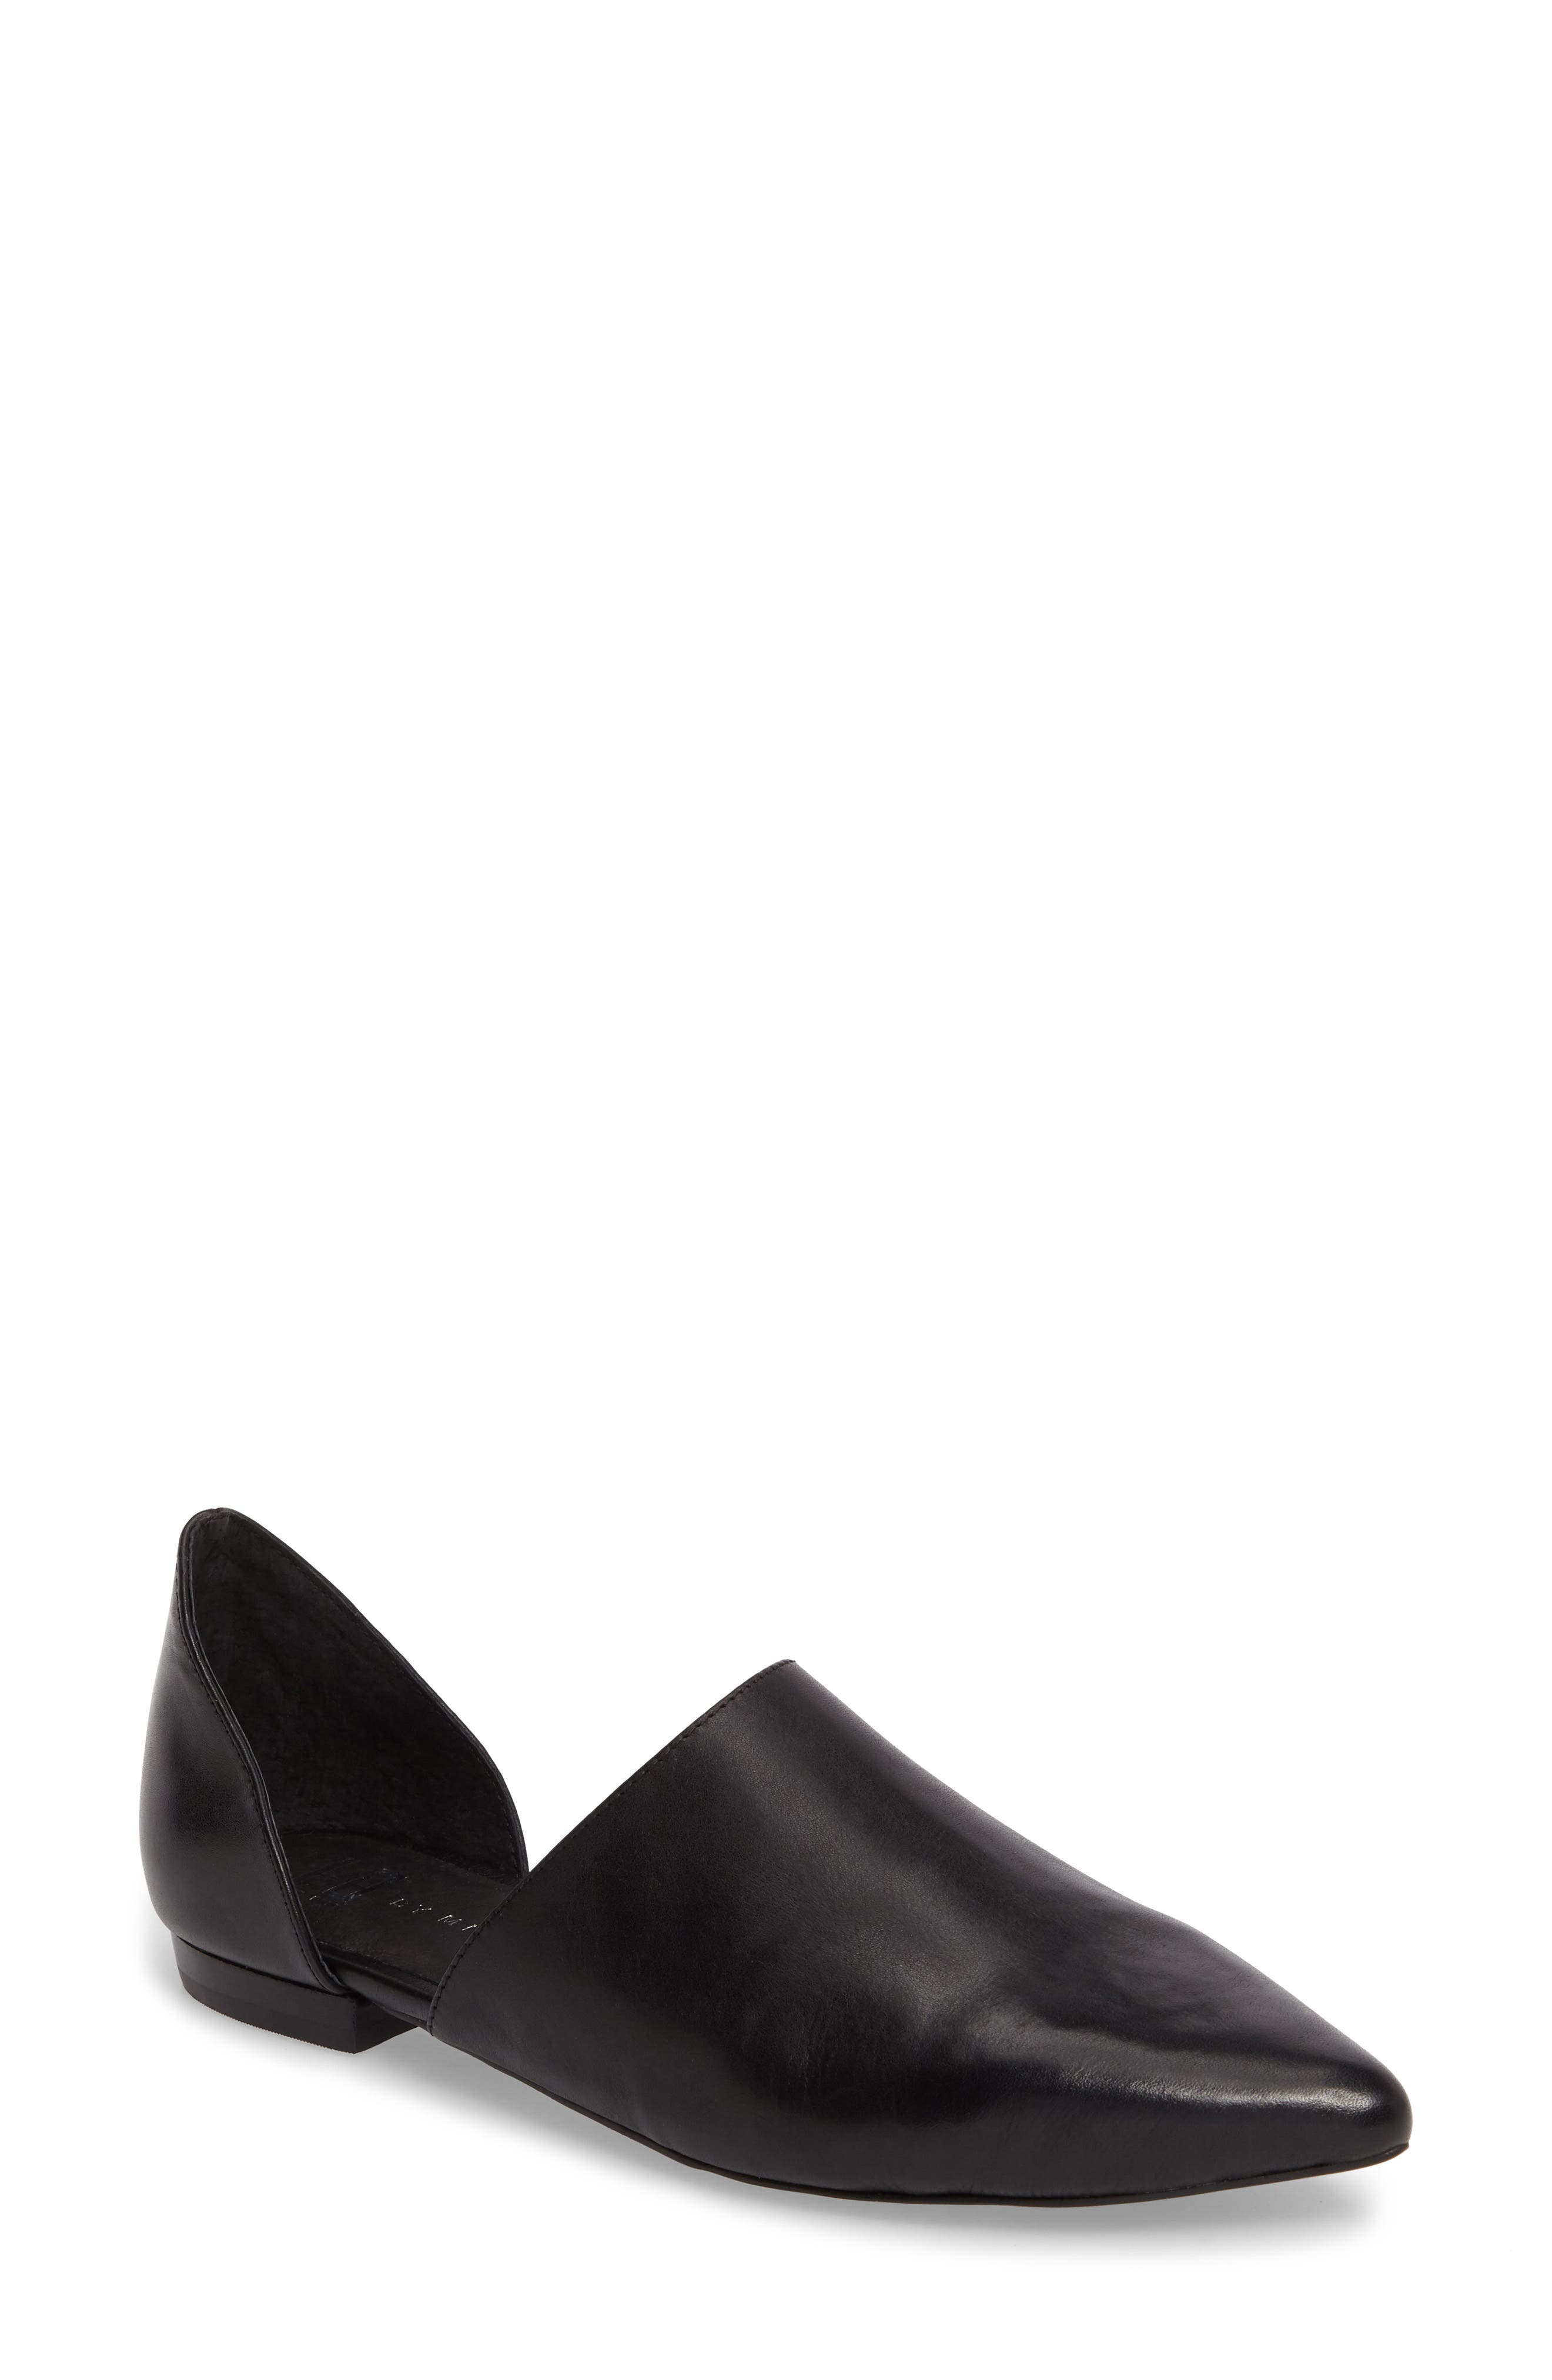 Danny d'Orsay Flat,                         Main,                         color, BLACK/ BLACK LEATHER